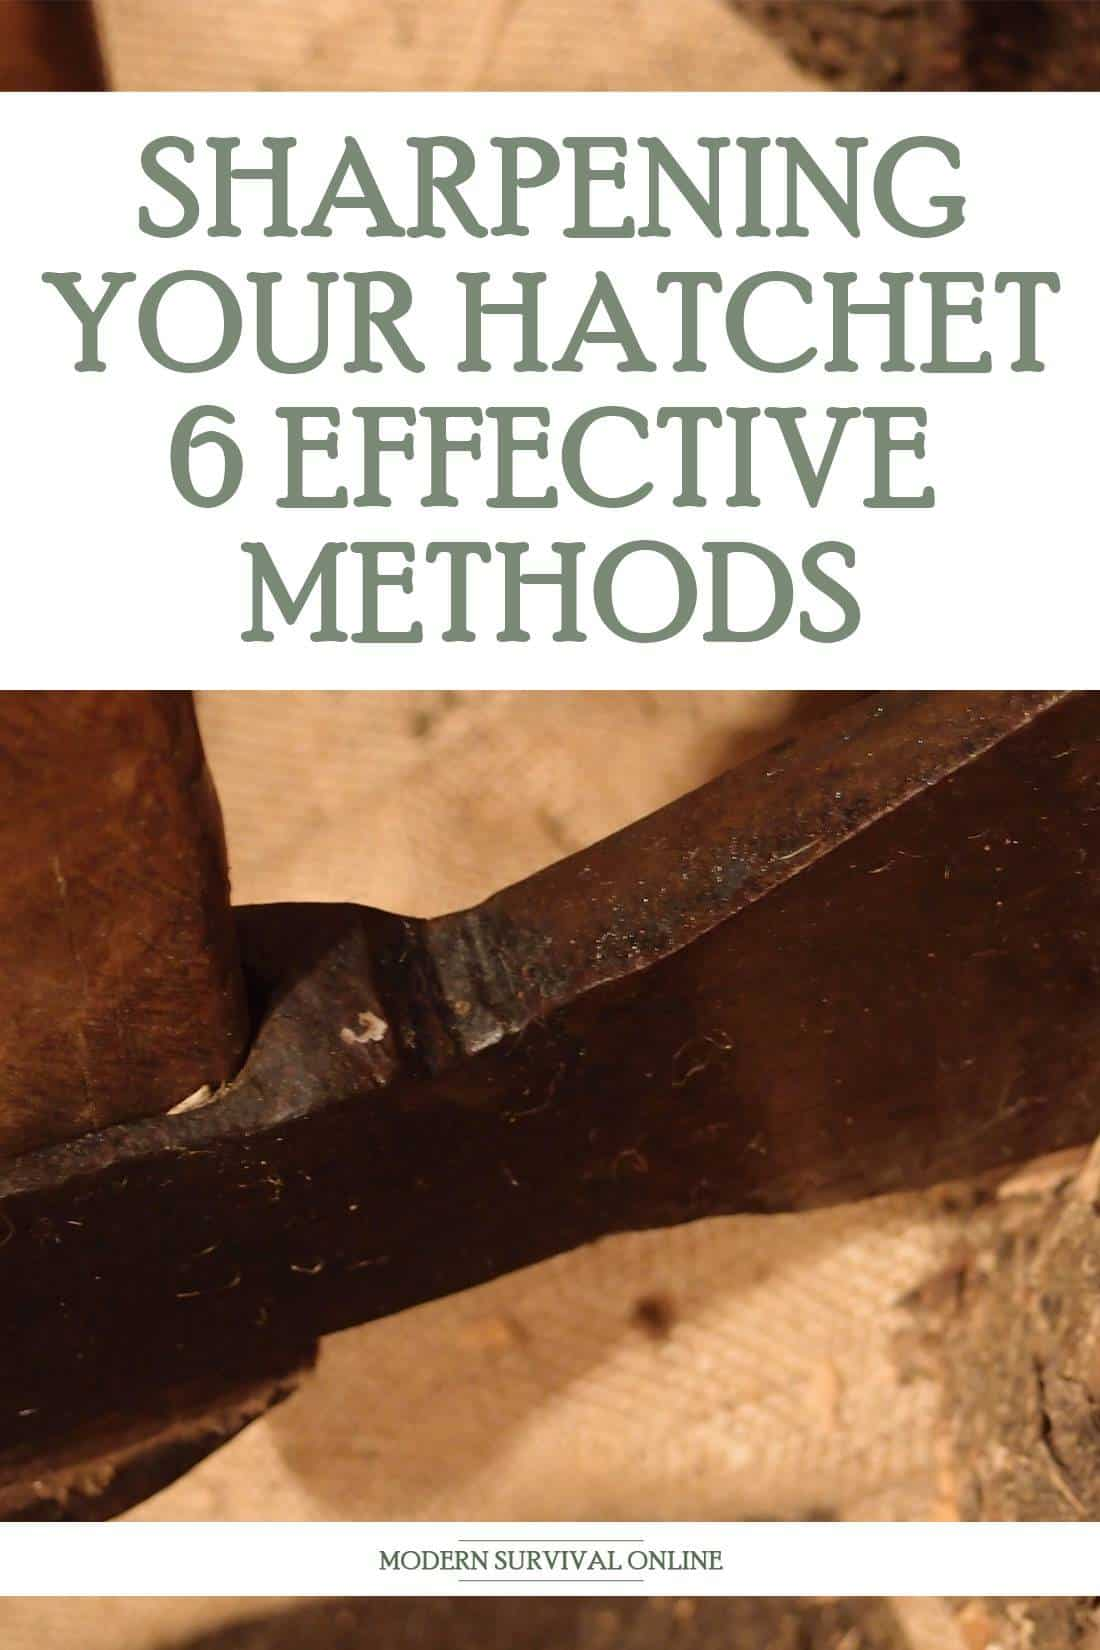 hatchet sharpening pinterest